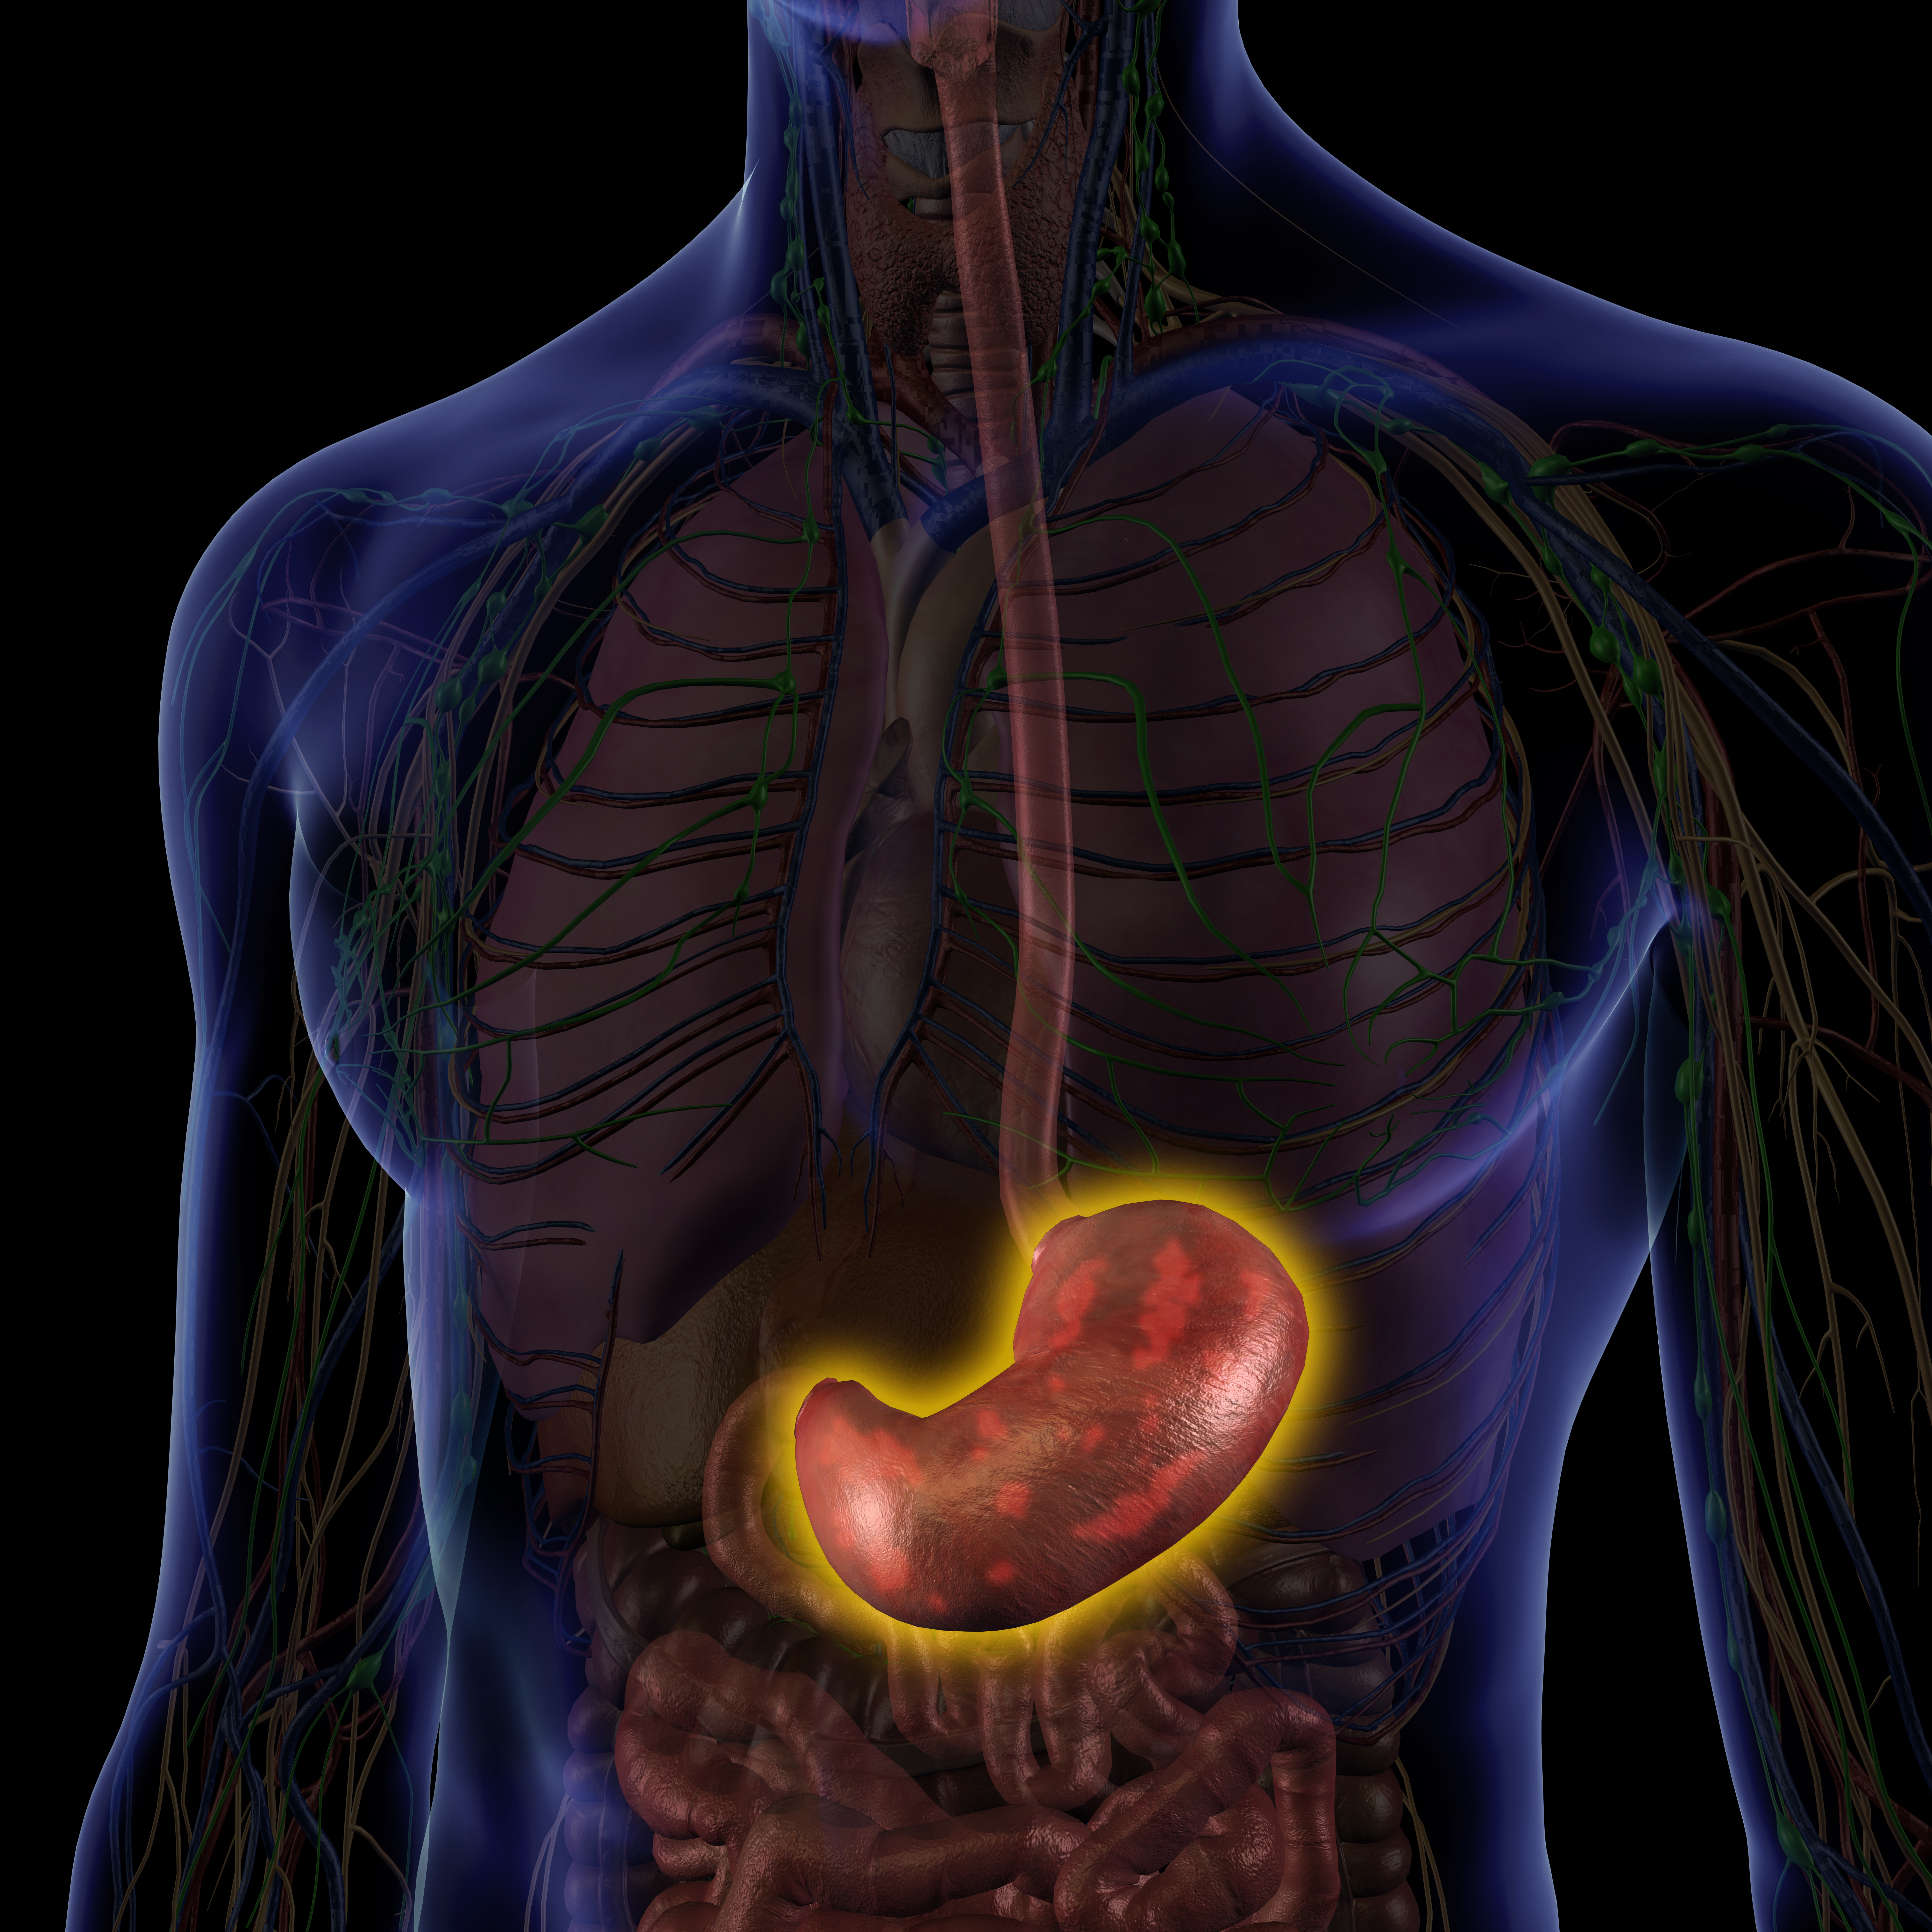 Male Internal Anatomy with Stomach Acid Highlighted